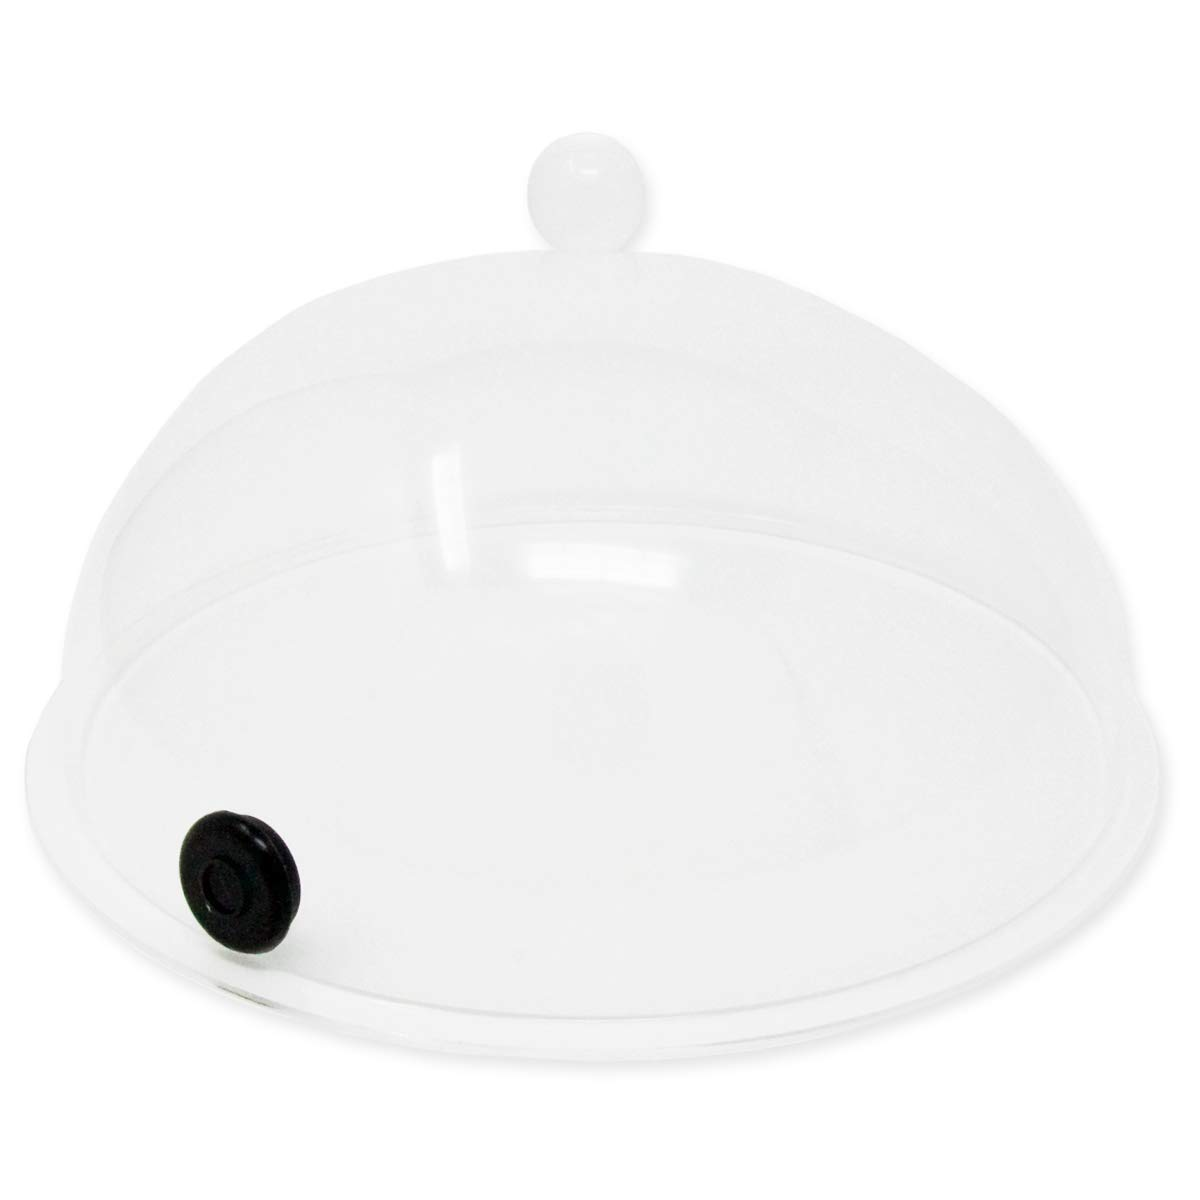 Handy Smoker PRO Smoking Gun 10 inch Dome Cover Cloche Lid for Plates, Bowls and Glasses